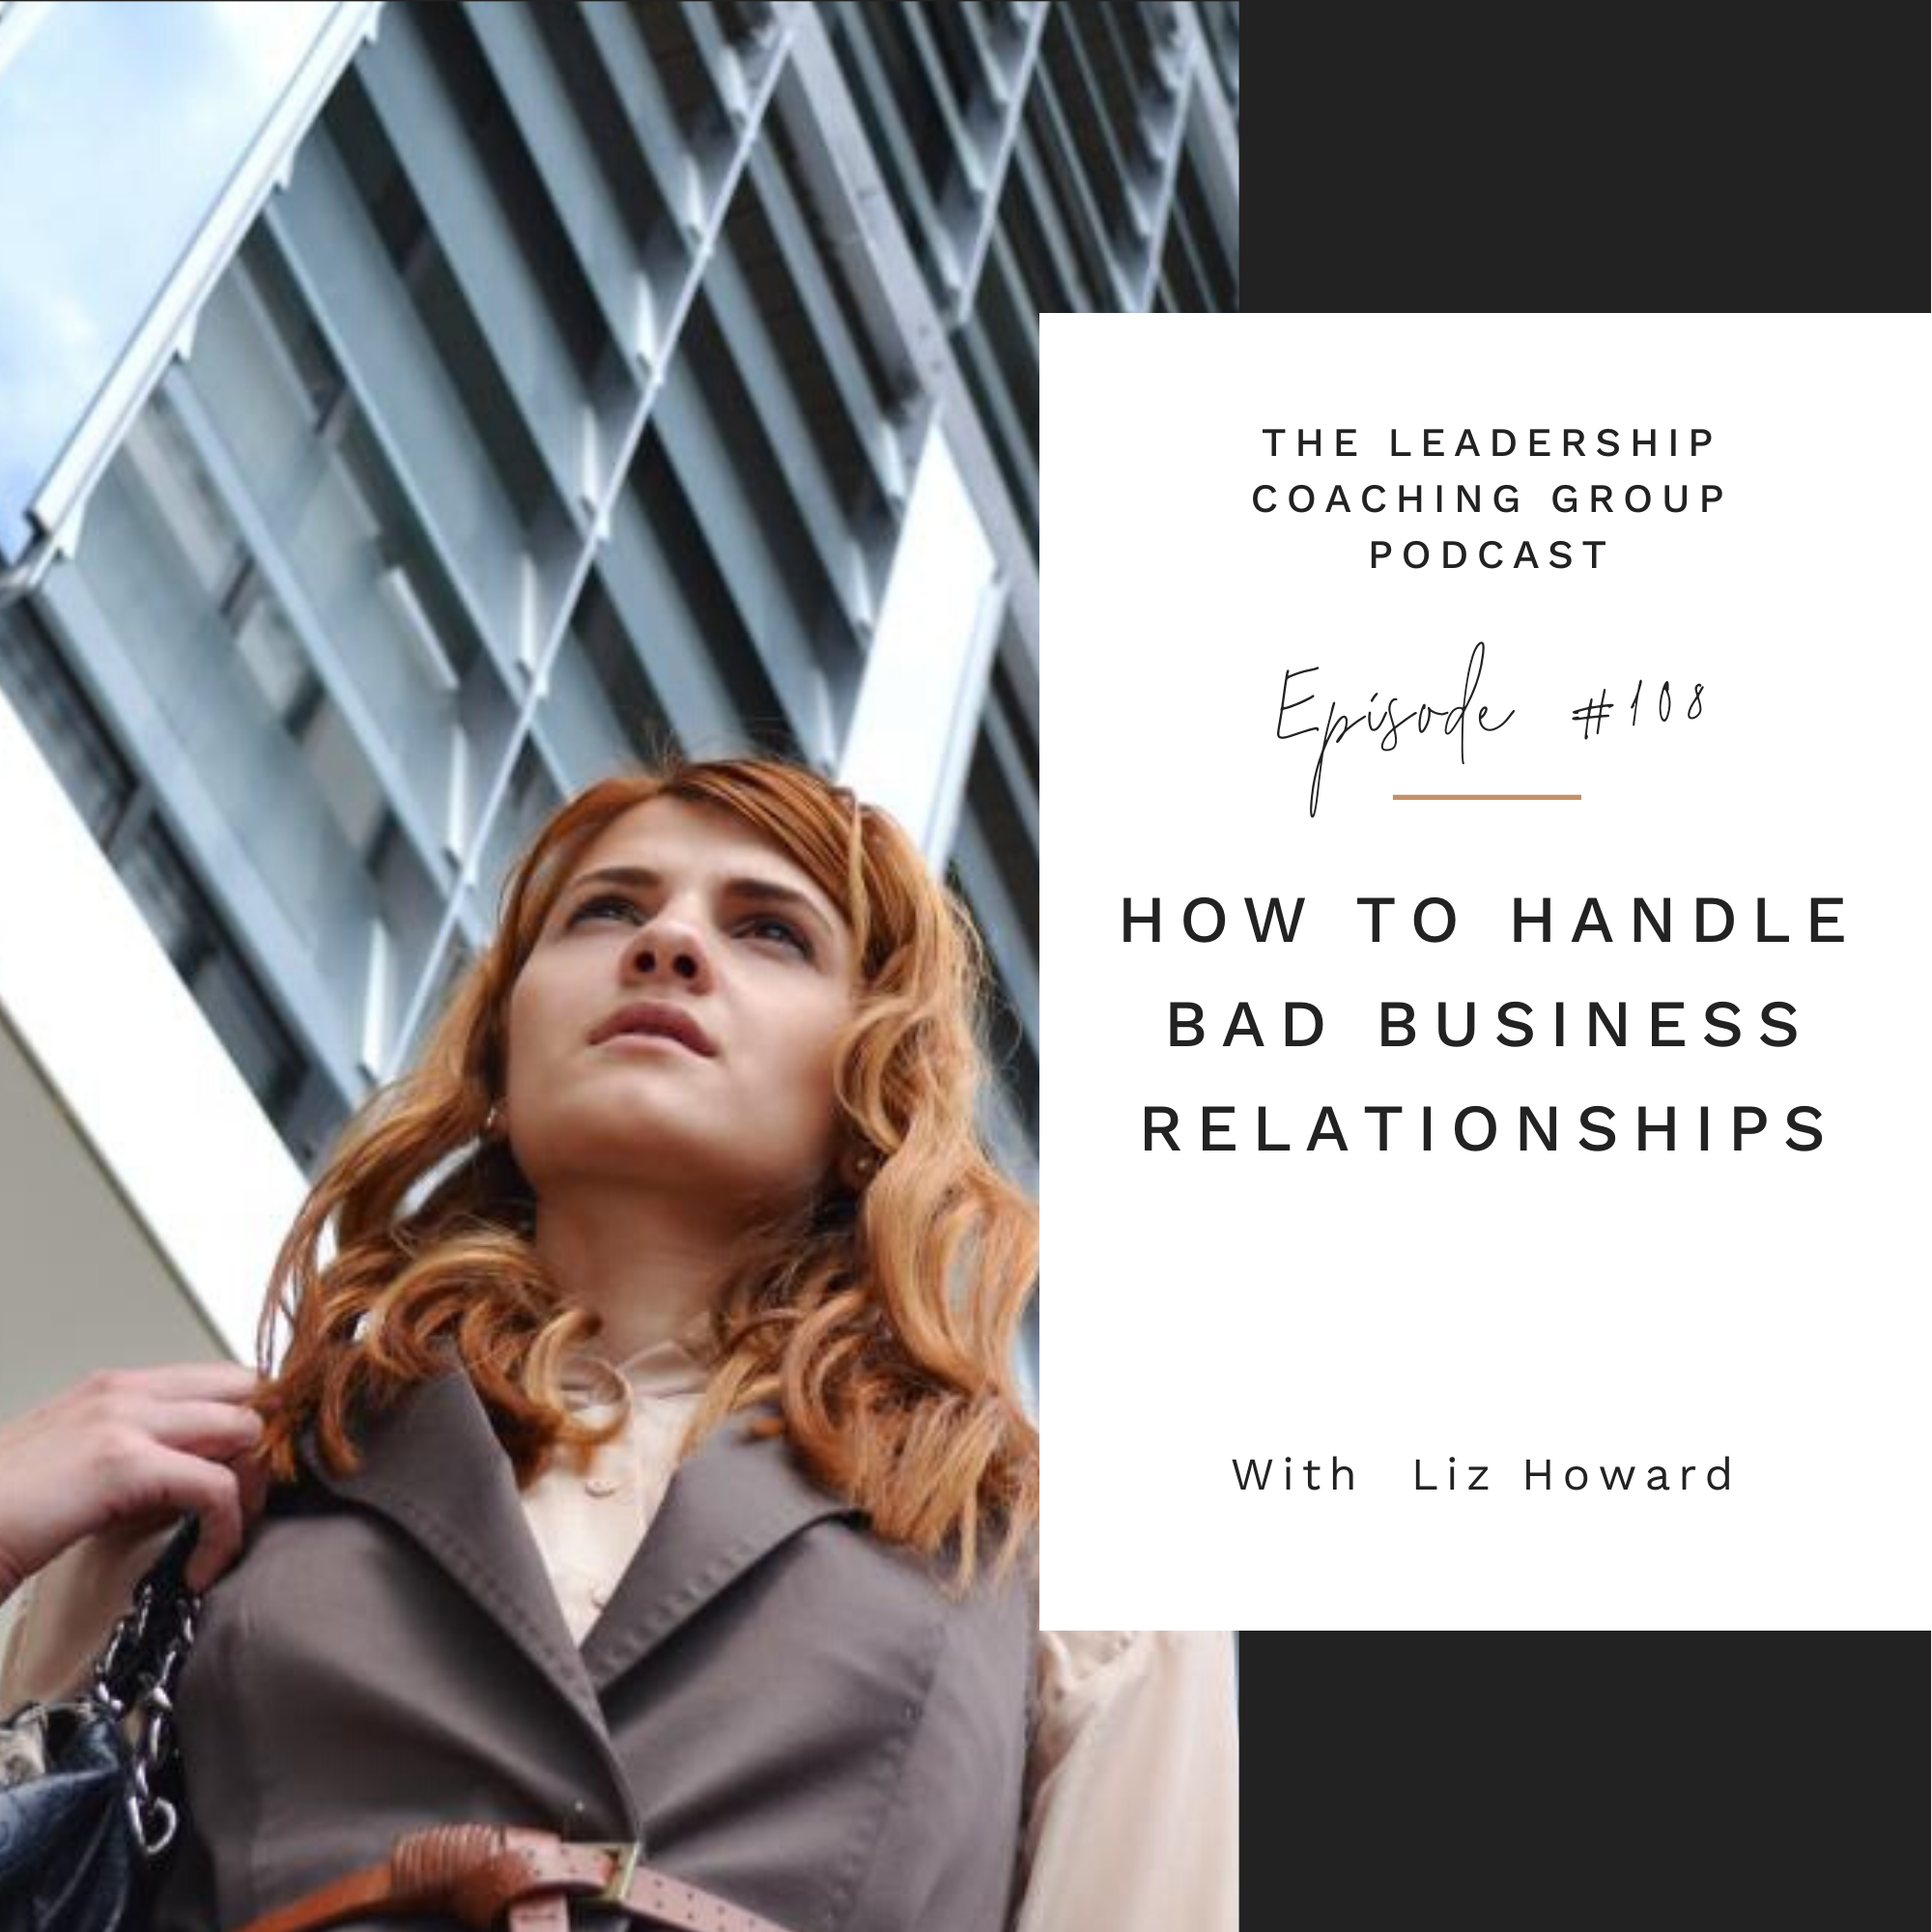 How to Handle Bad Business Relationships with Liz Howard show art